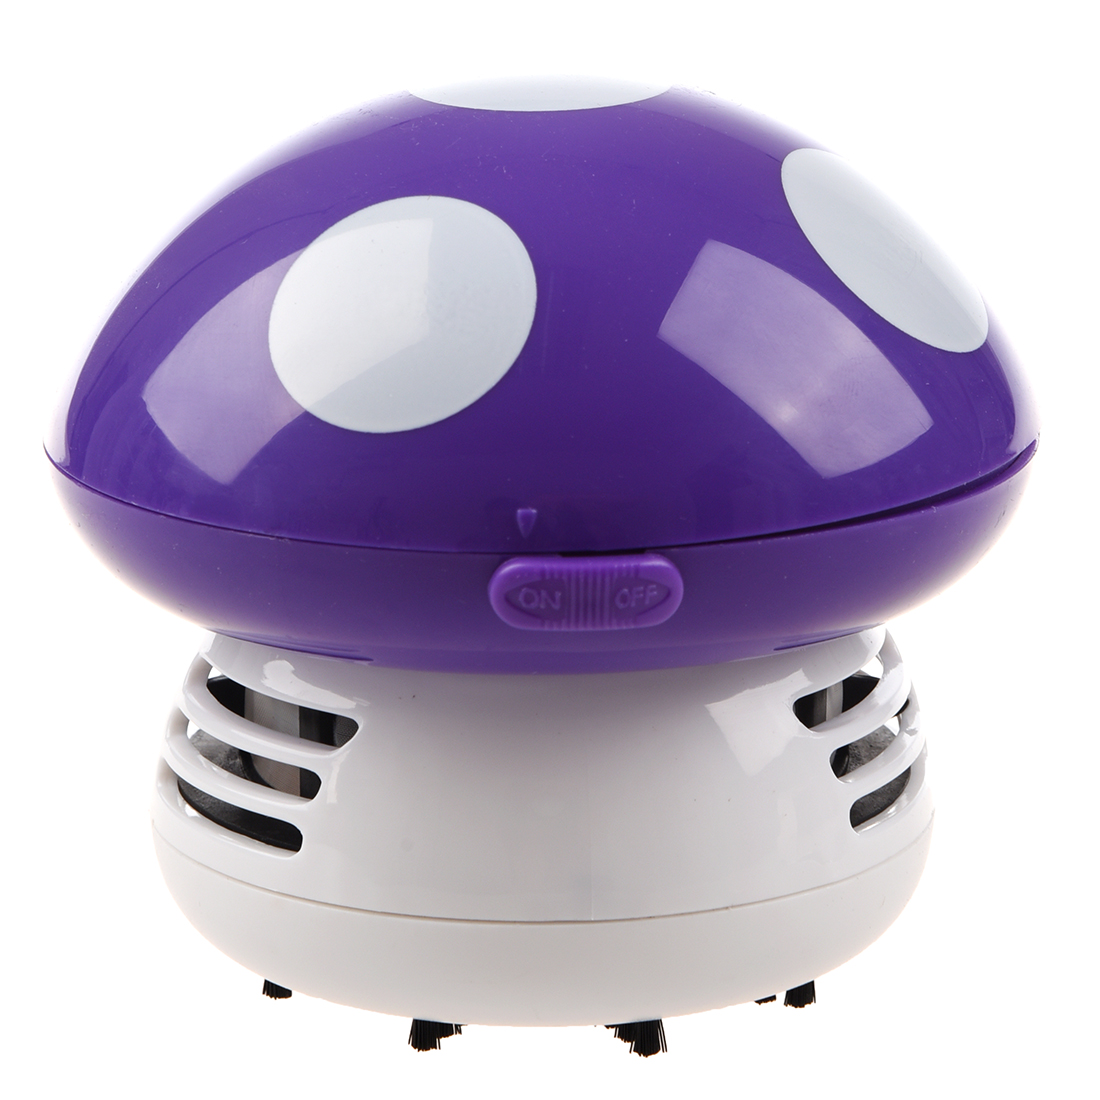 New Home Handheld Mushroom Shaped Mini Vacuum Cleaner Car Laptop keyboard Desktop Dust cleaner-purple цена